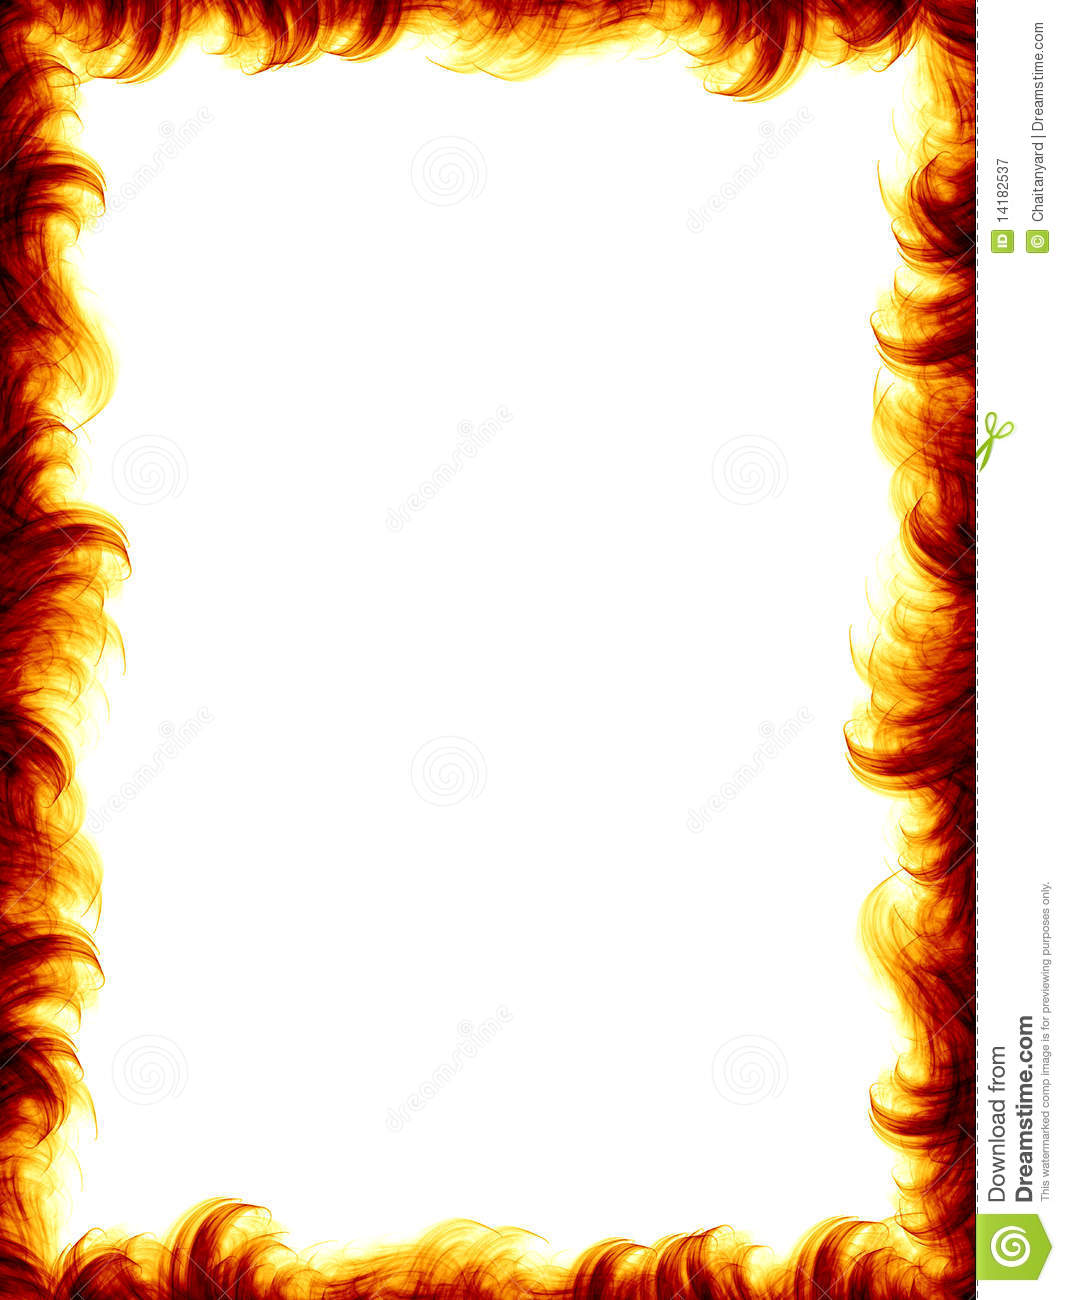 Fire Frame Royalty Free Stock Photography - Image: 14182537